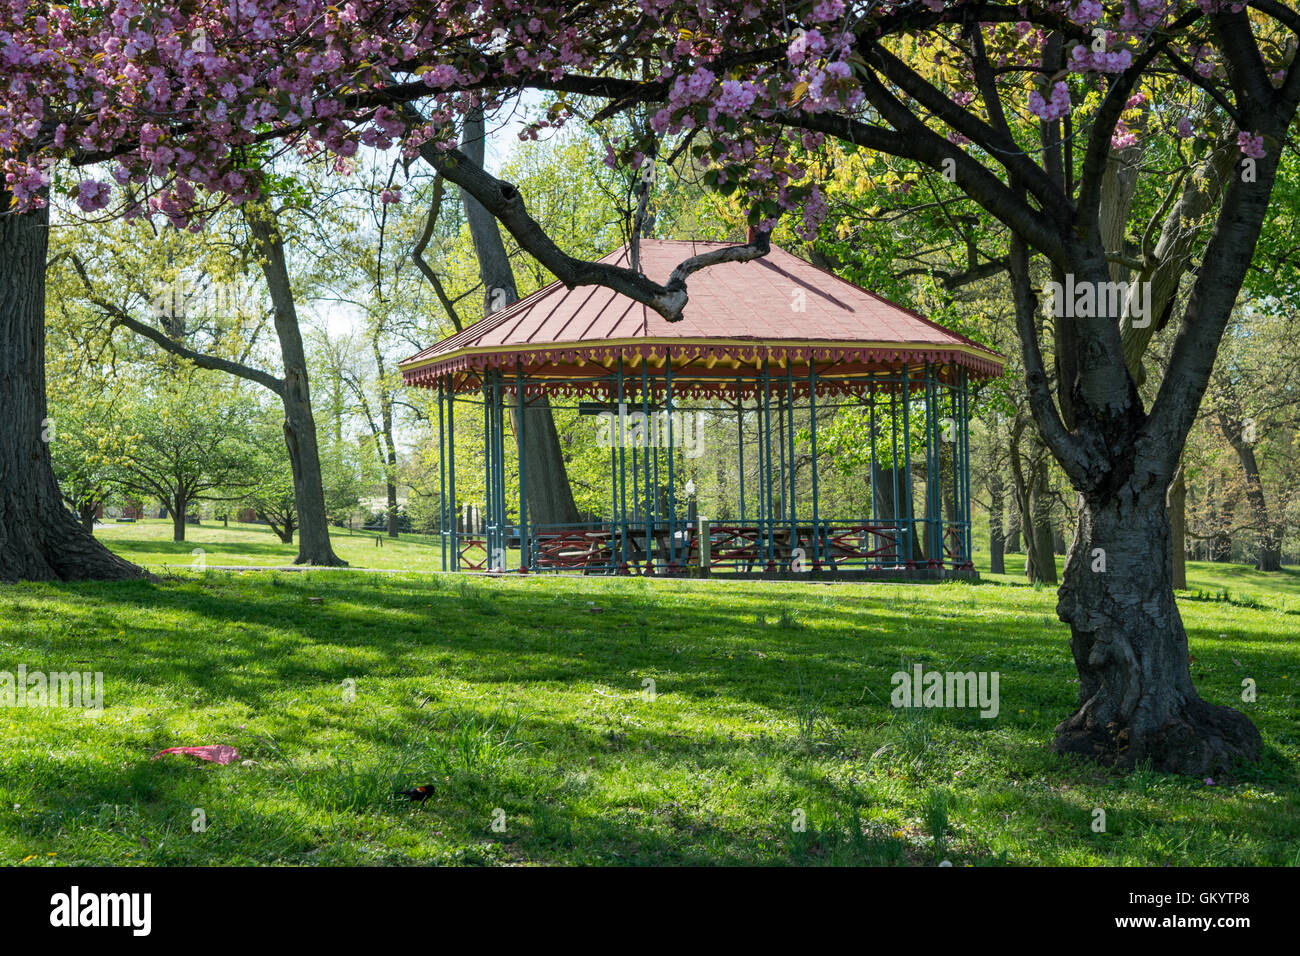 Landscape of Druid Park in Baltimore, Maryland - Stock Image